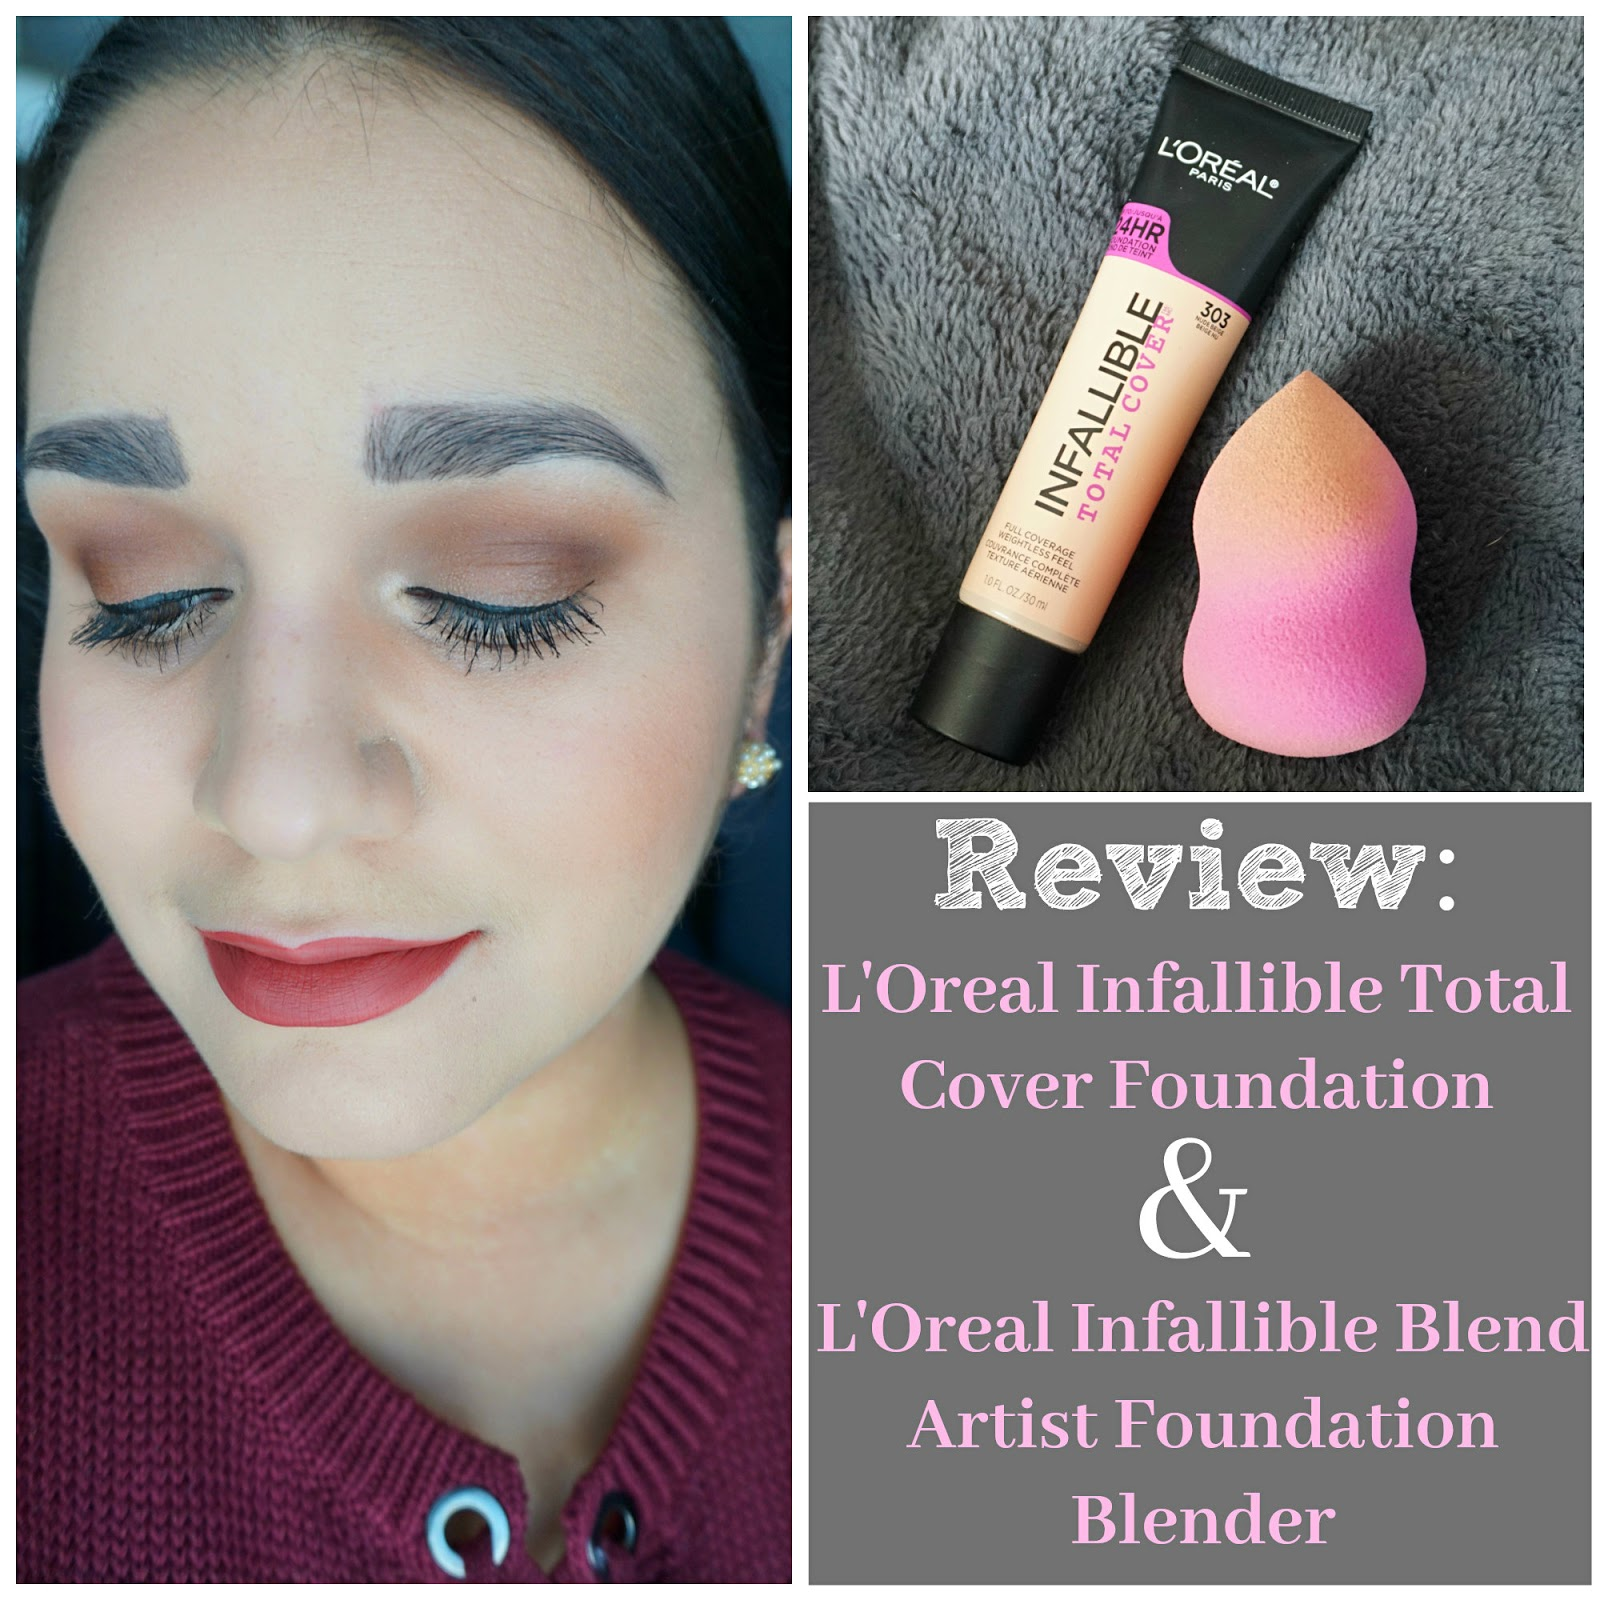 Makeup, Fashion & Royalty: Review: L'Oreal Infallible